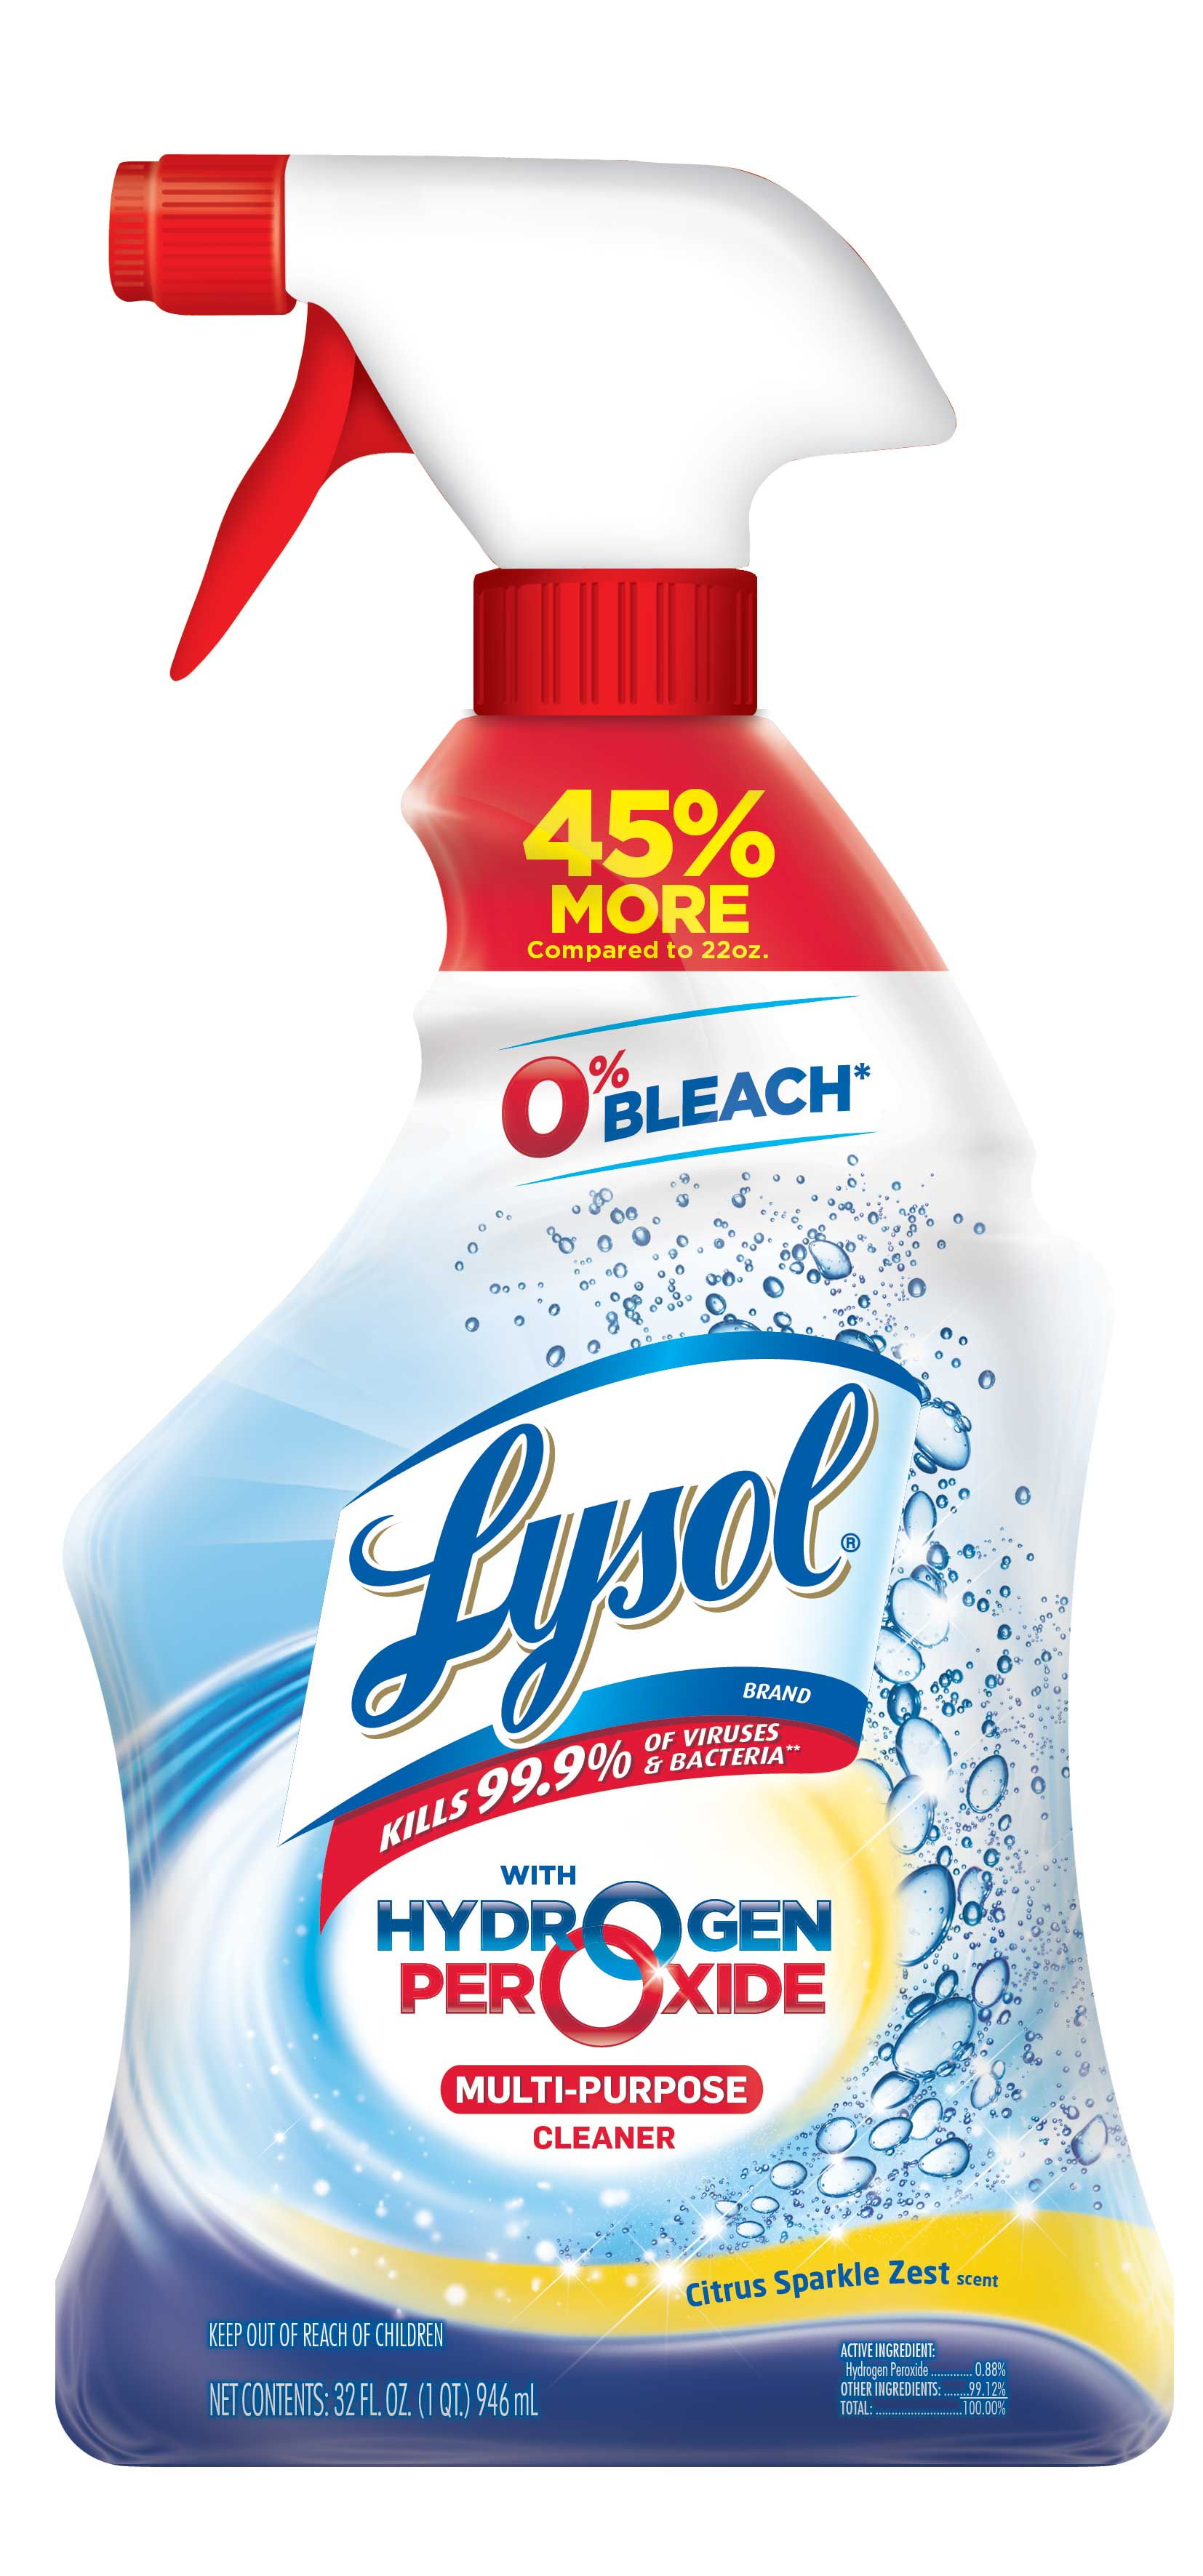 Lysol Bleach Free Hydrogen Peroxide Multi-Purpose Cleaner, Citrus 32oz